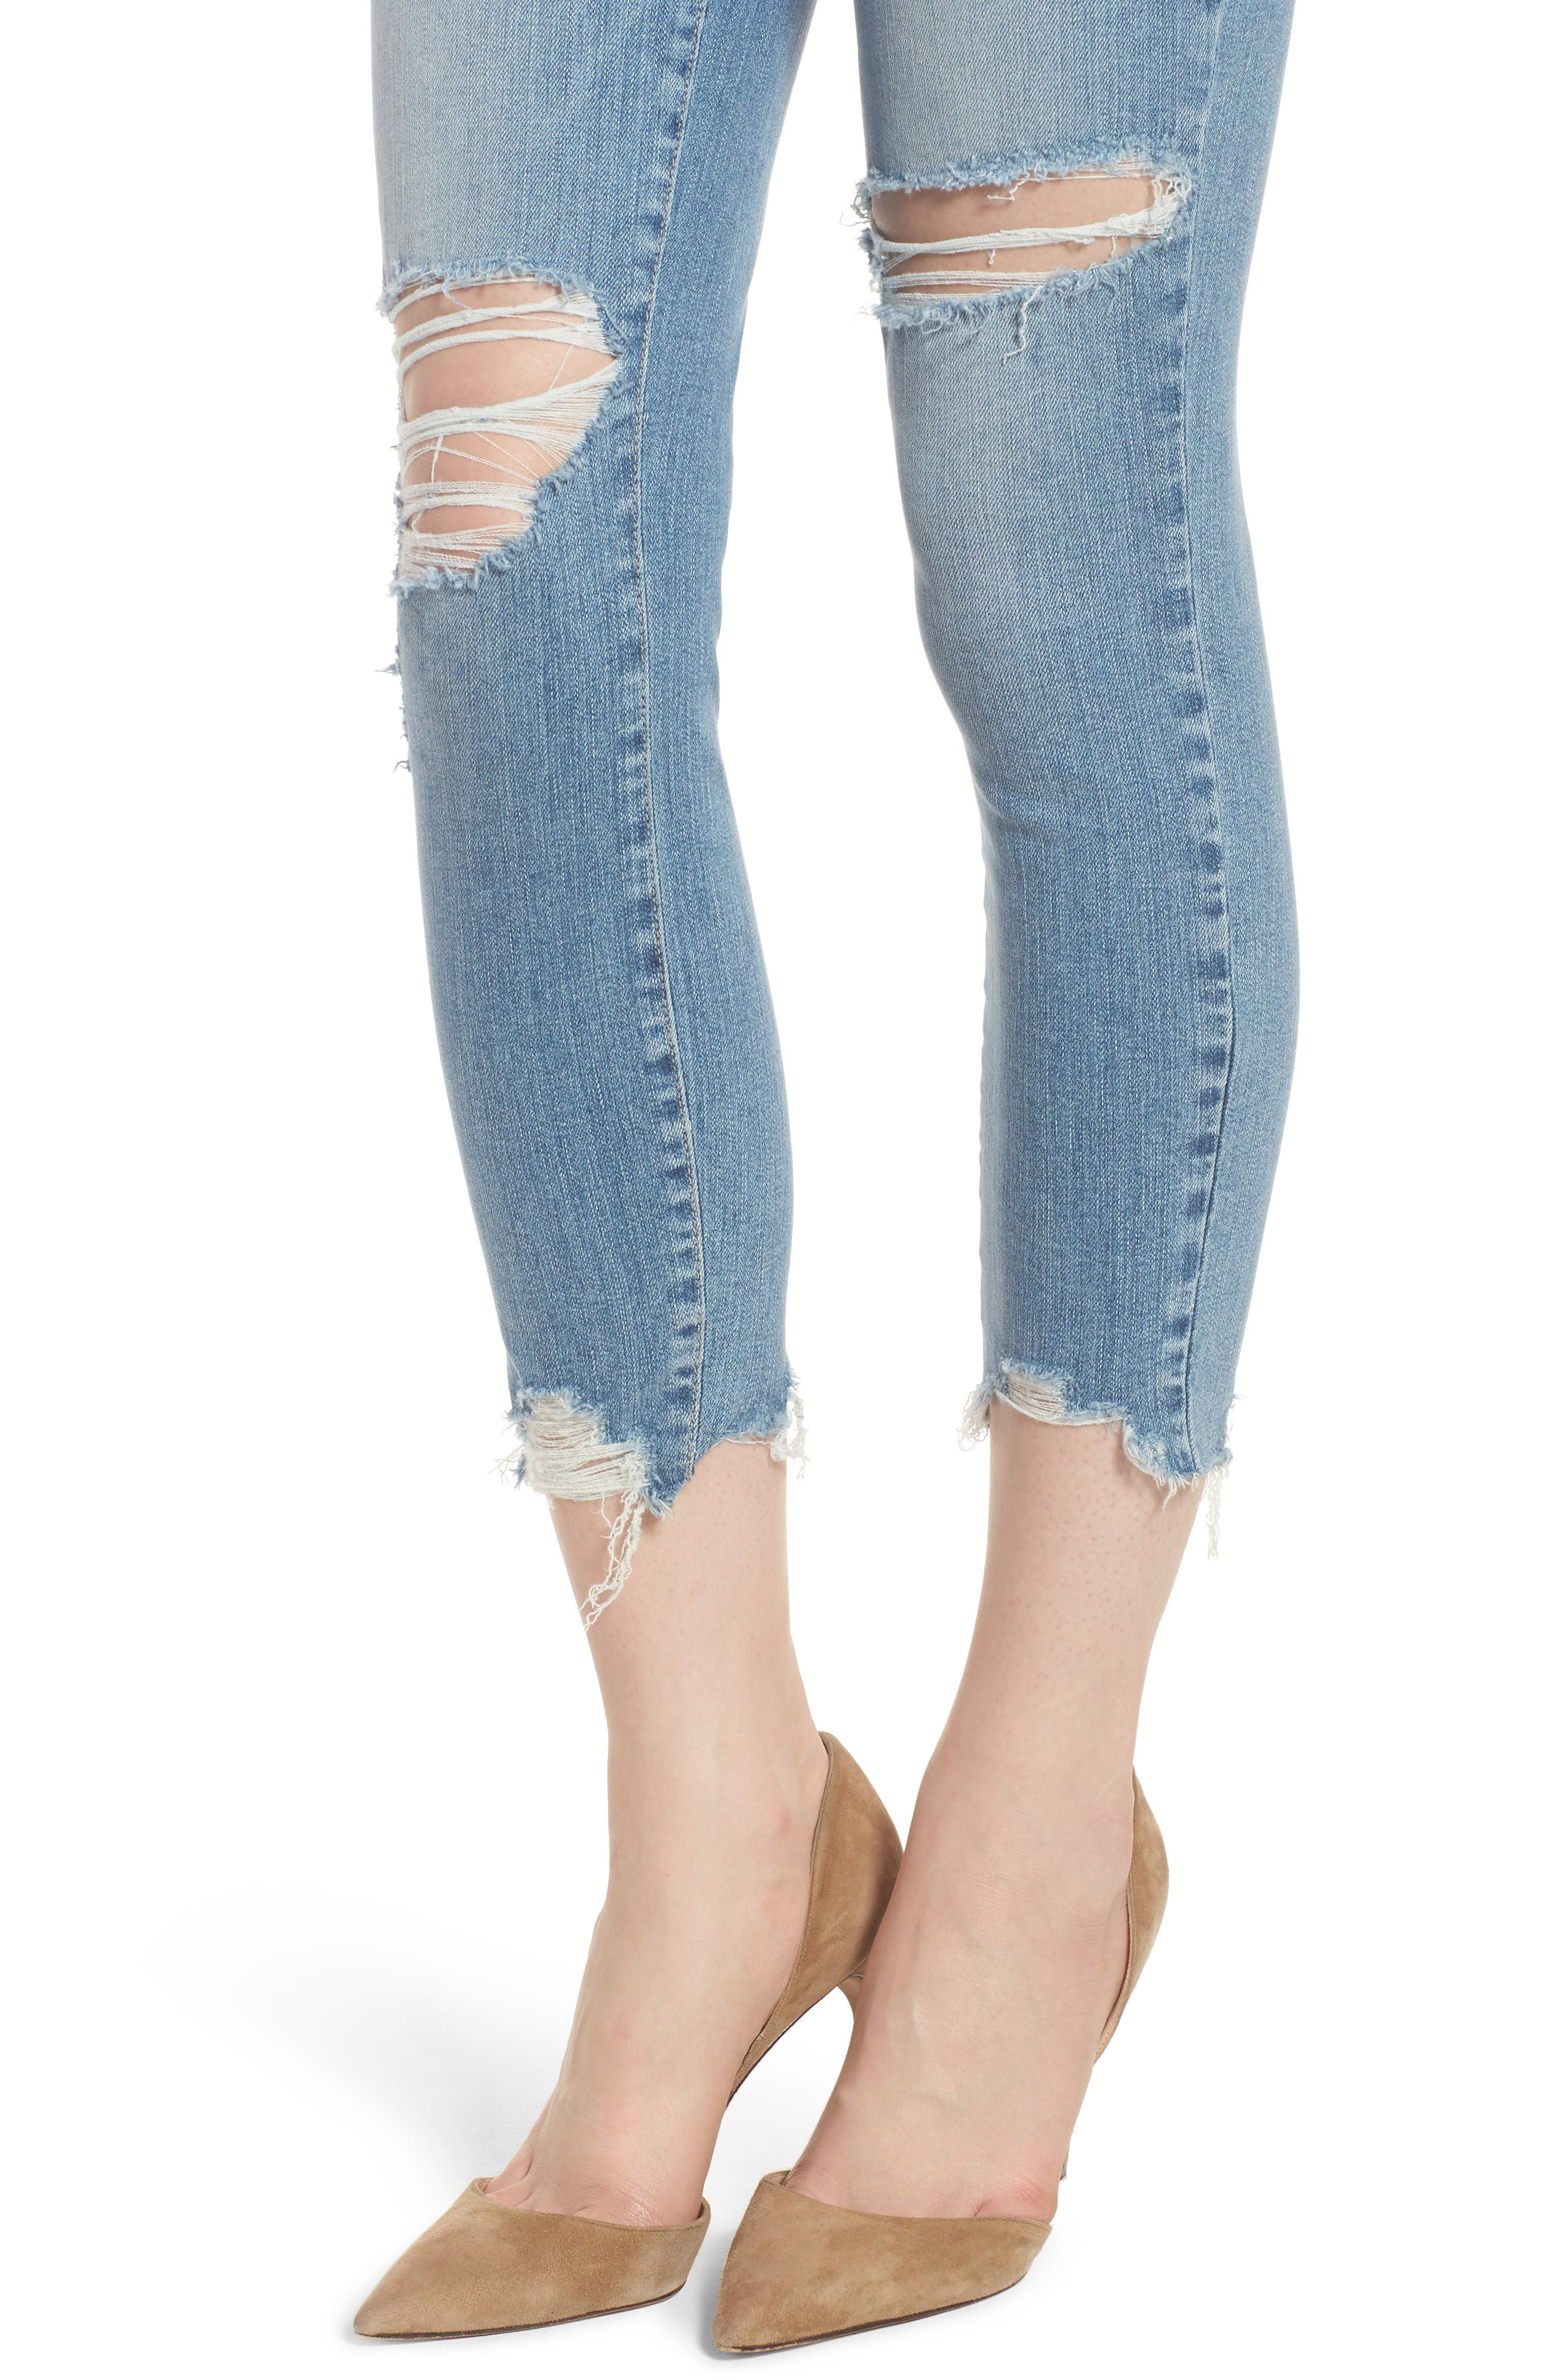 Verdugo Ripped Crop Ultra Skinny Jeans,                             Alternate thumbnail 4, color,                             Janis Destructed